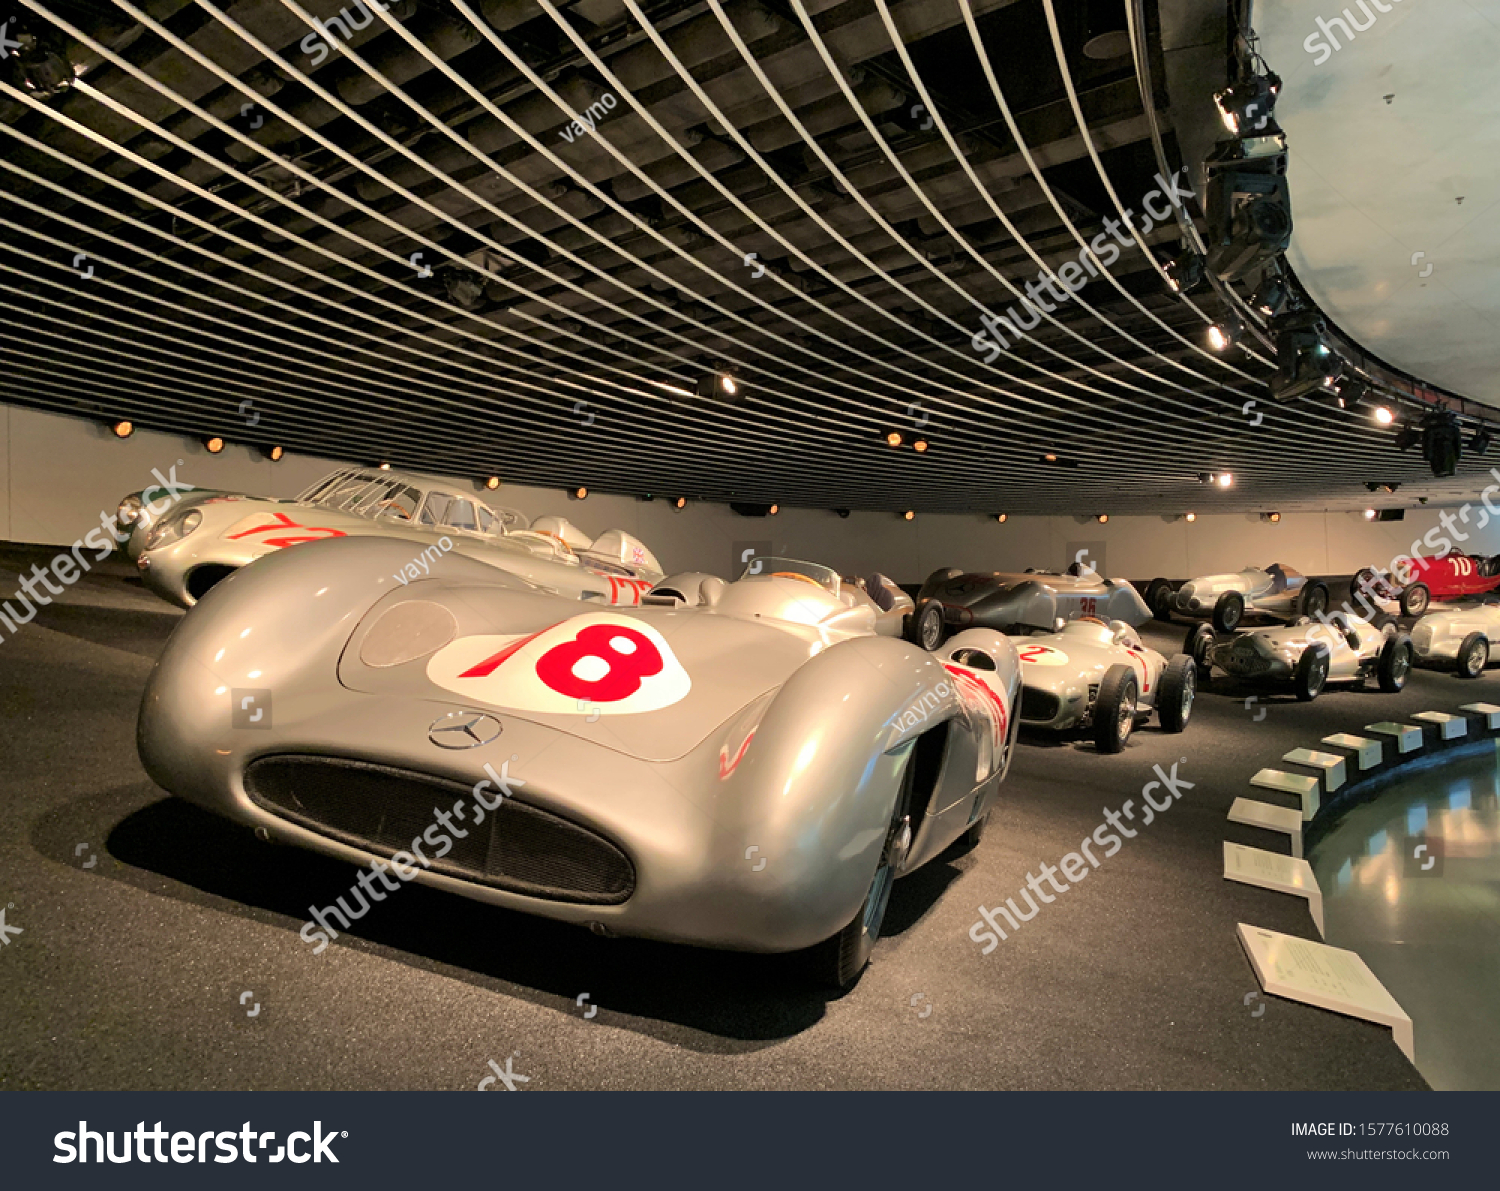 Stuttgart / Germany - 3 December 2019 : Modified racing cars from Mercedes. Mercedes concept cars, cars of the future.